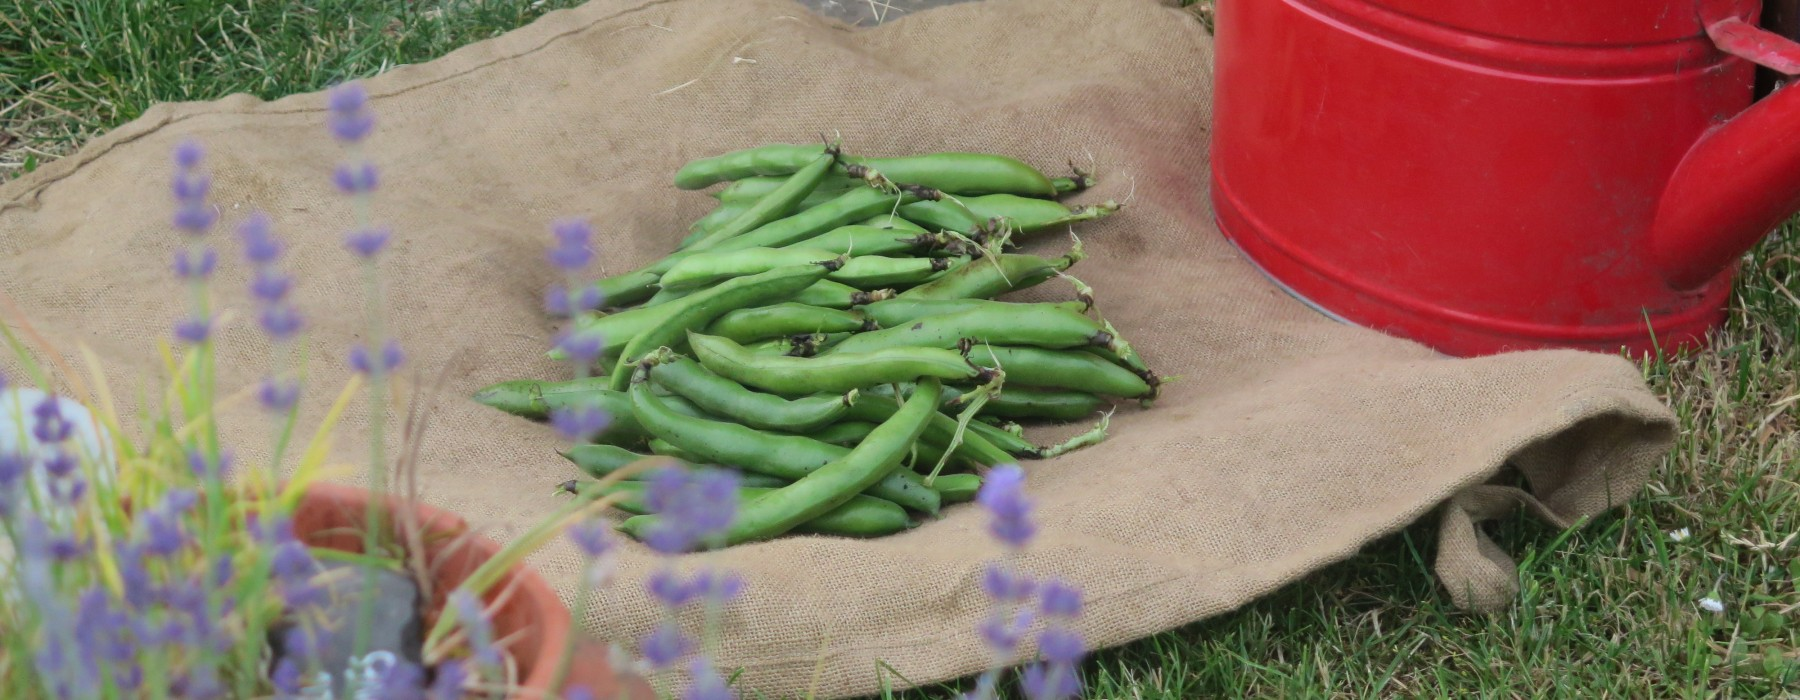 Broad beans and Flowers